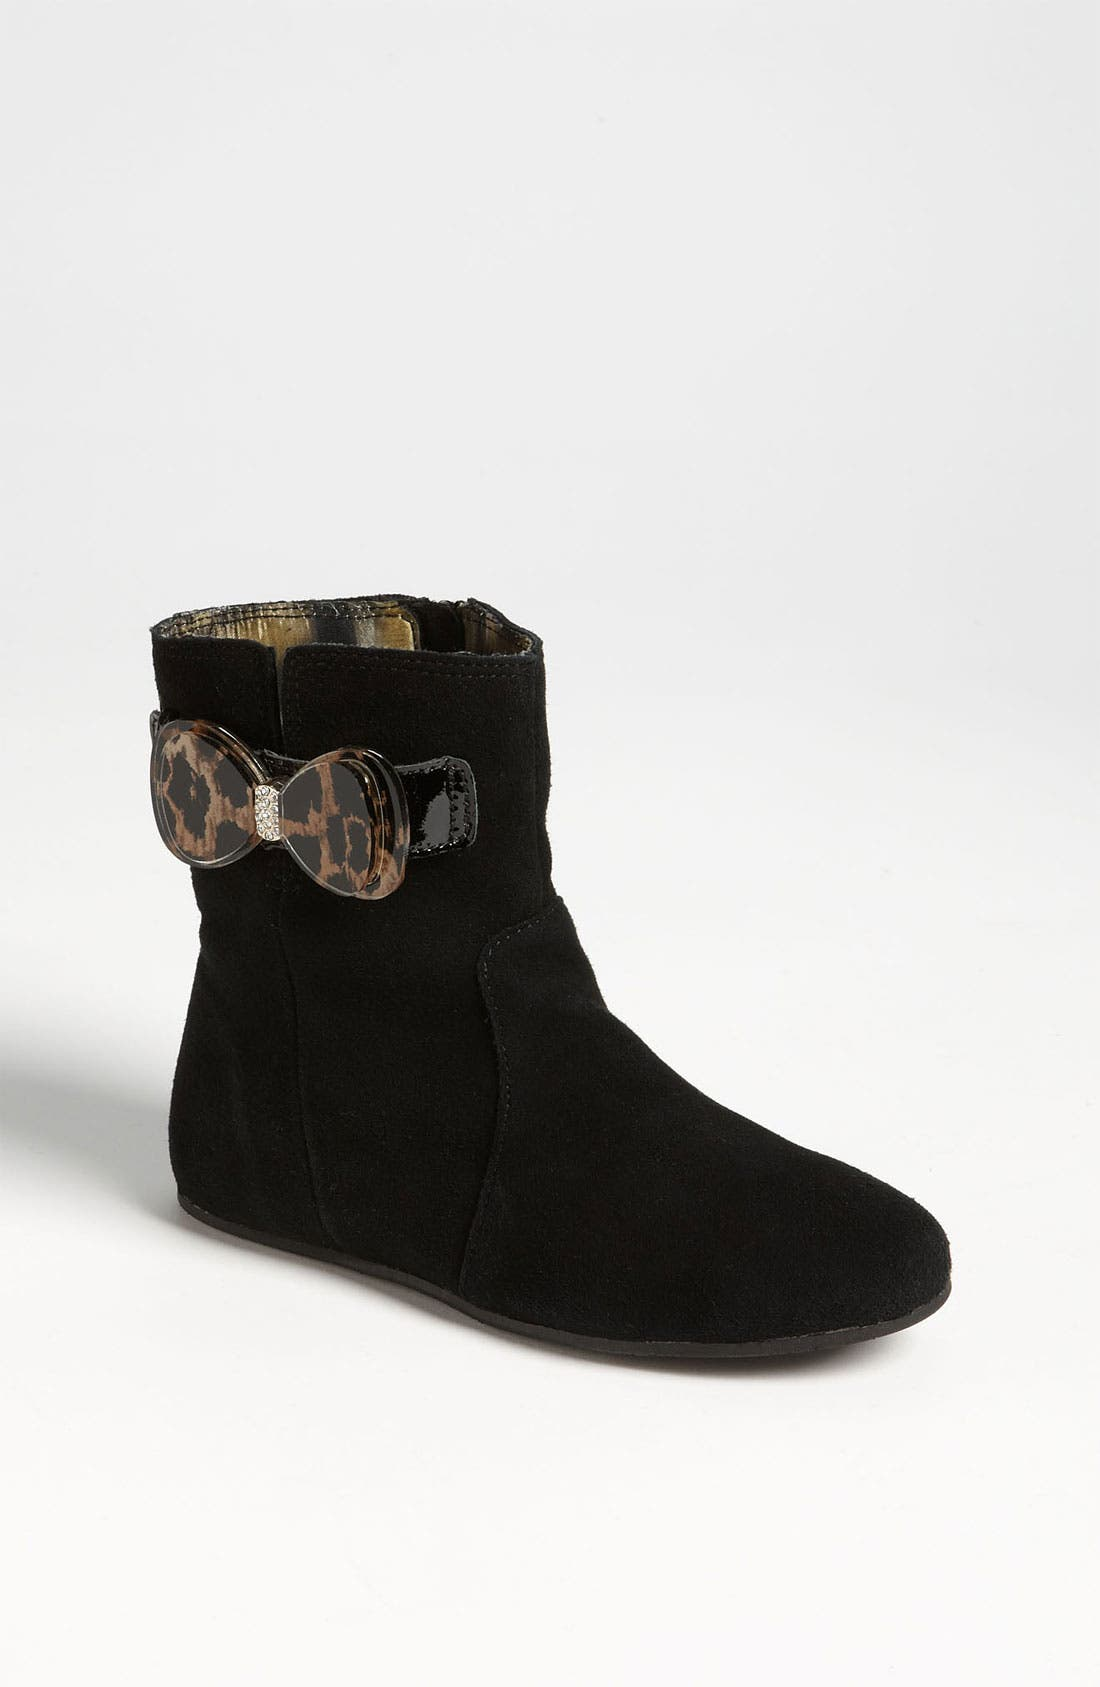 Alternate Image 1 Selected - Juicy Couture 'Rebbie' Boot (Toddler, Little Kid & Big Kid)